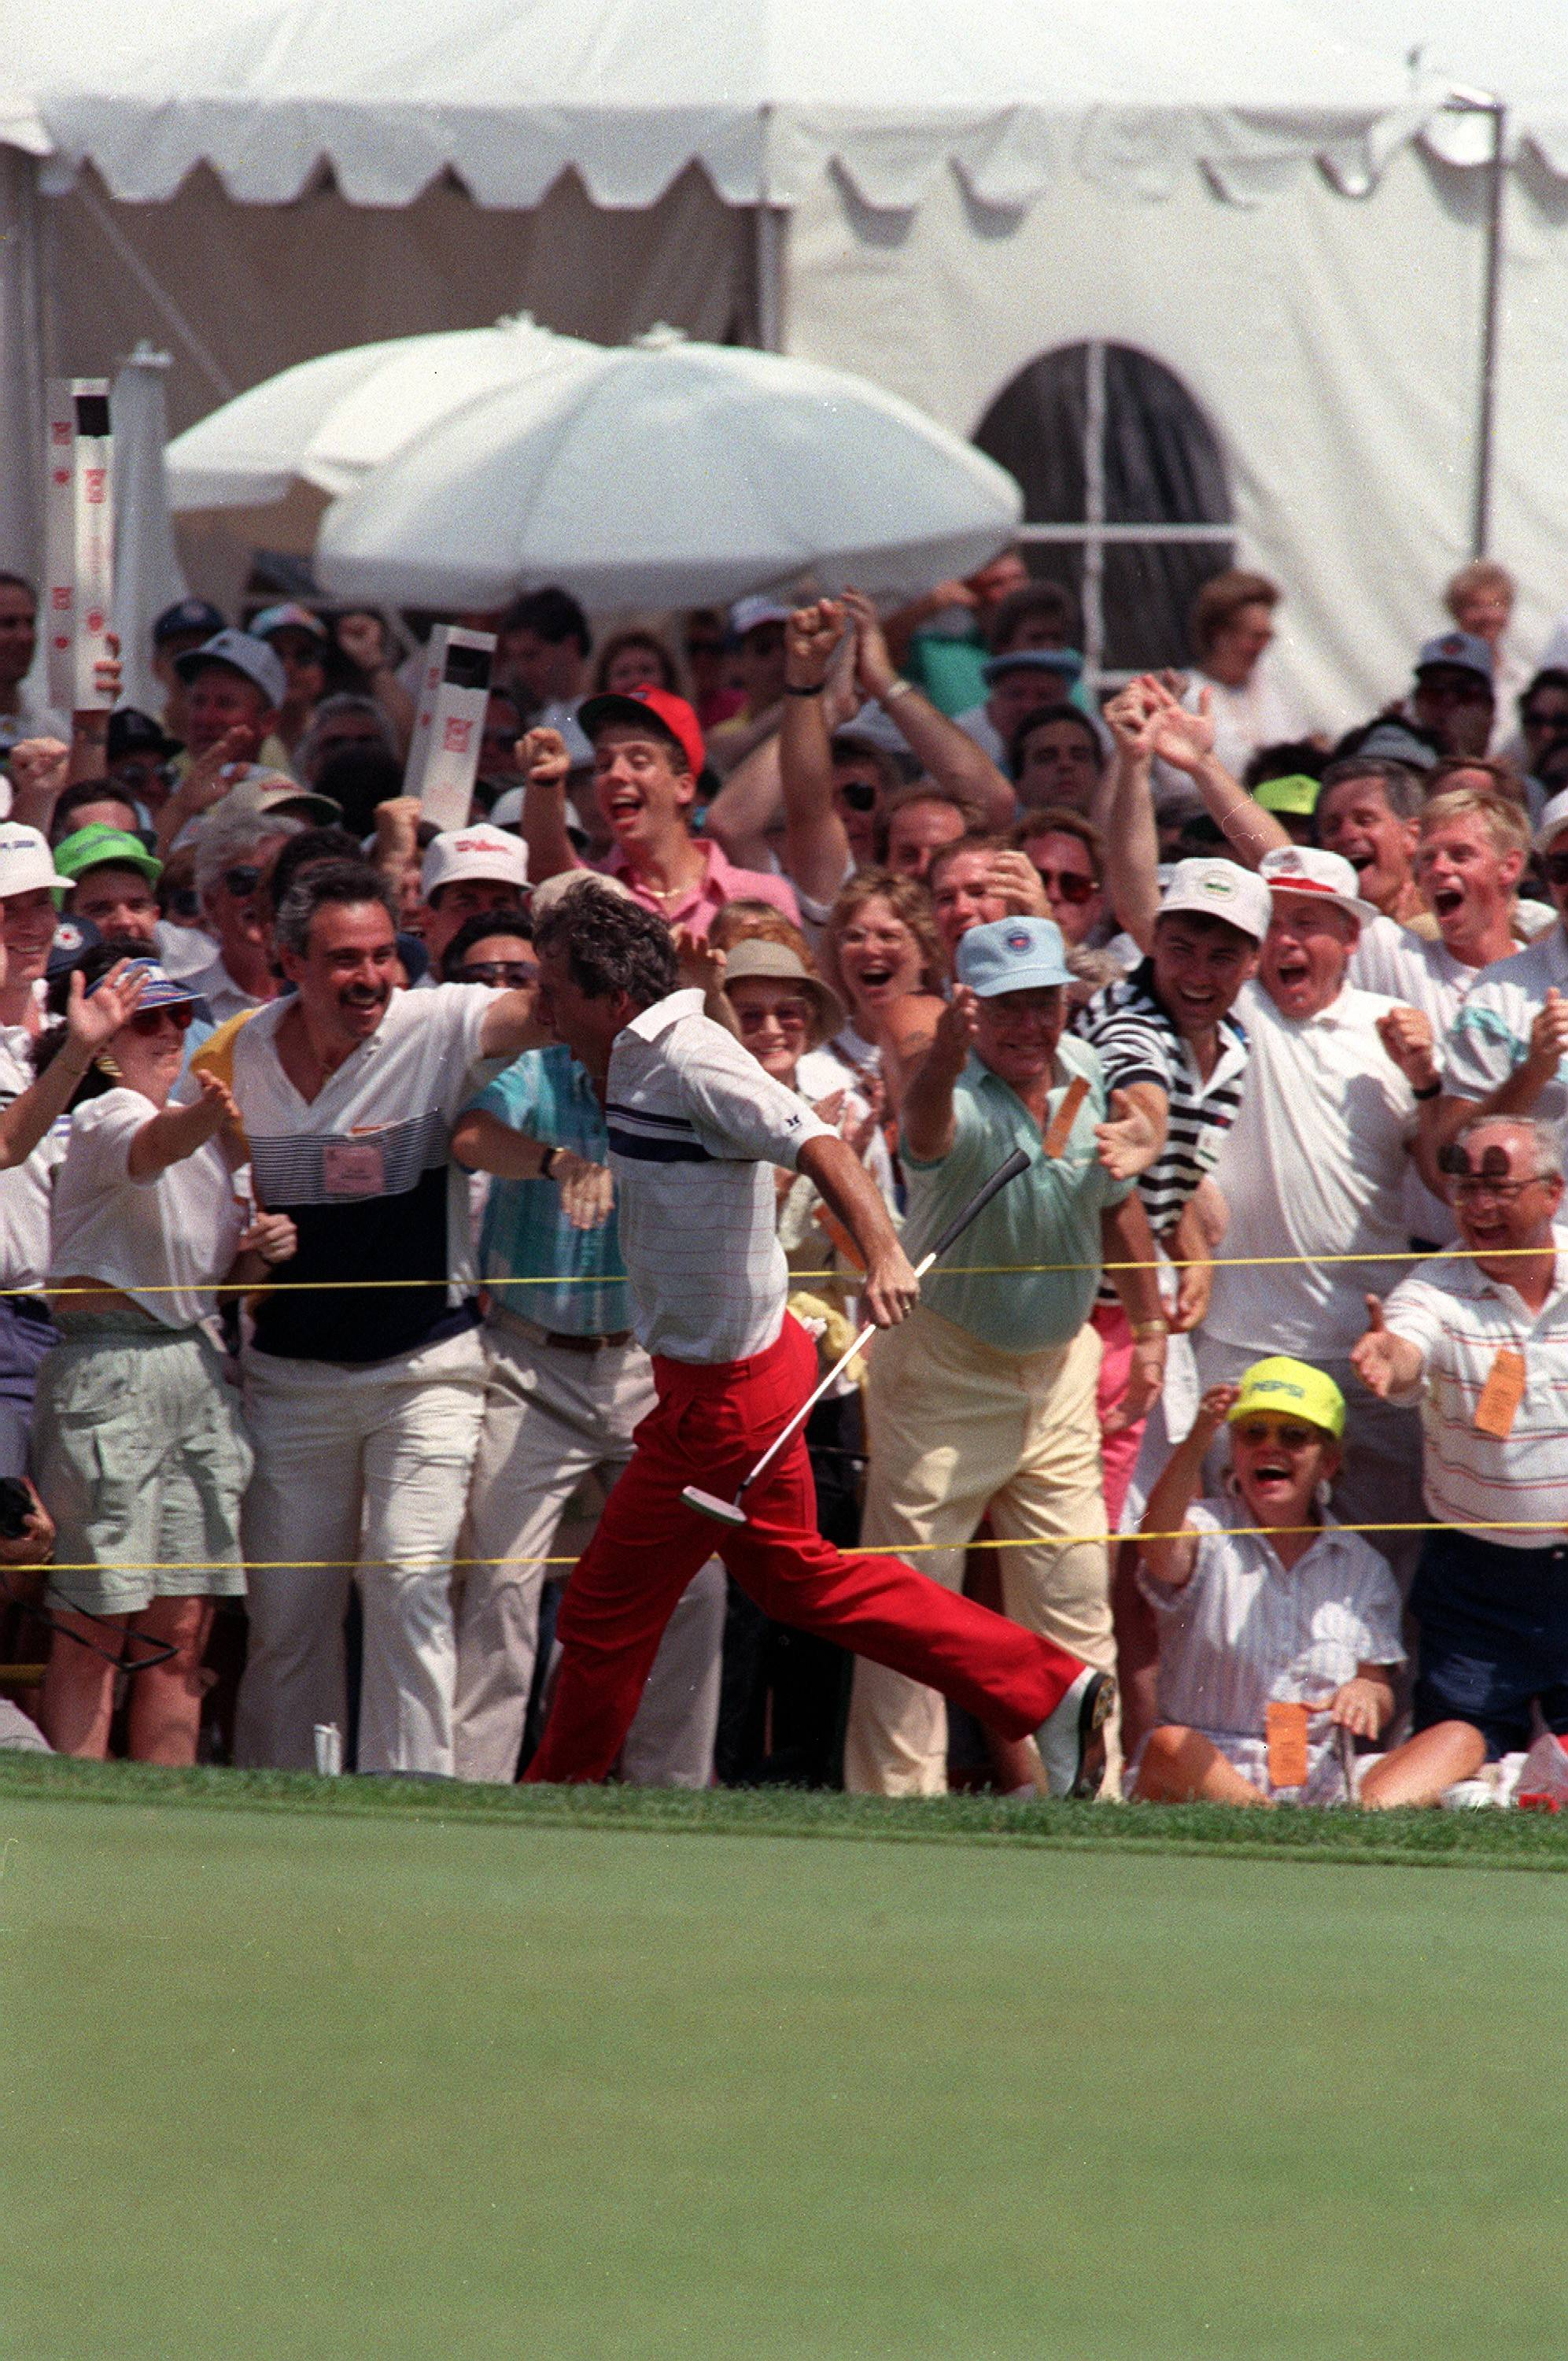 Two time U.S. Open winner Hale Irwin gets a round of high-fives from the fans surrounding the 18th green after sinking a 60-foot putt during the U.S. Open at Medinah Country Club in Medinah, Ill., Sunday, June 17, 1990. The play put Irwin in the clubhouse at 8-under for the tournament. Irwin won the championship in playoffs with a score of 280. (AP photo/Charles Bennett)